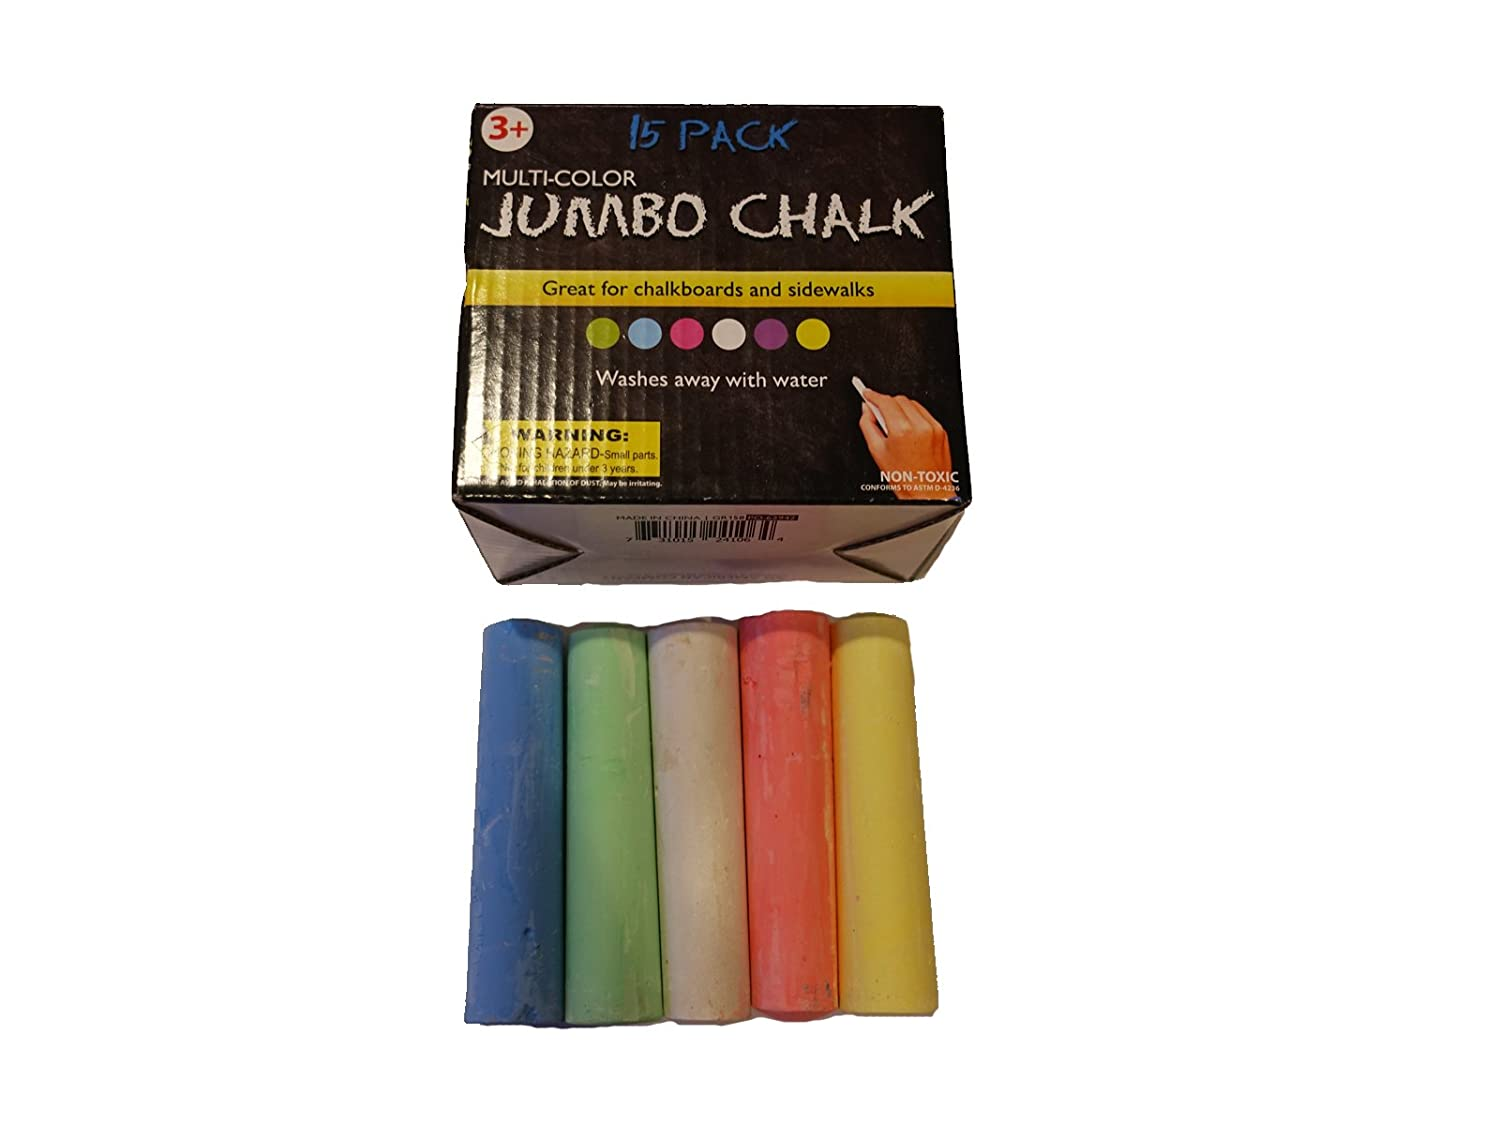 Qornerstone Kid's Jumbo Chalk Set – Perfect For Outdoor or Indoor Fun – Pack of 15 Pieces of Giant Chalk – Great For Kids or Adults! - Assorted Vibrant Colors Kole